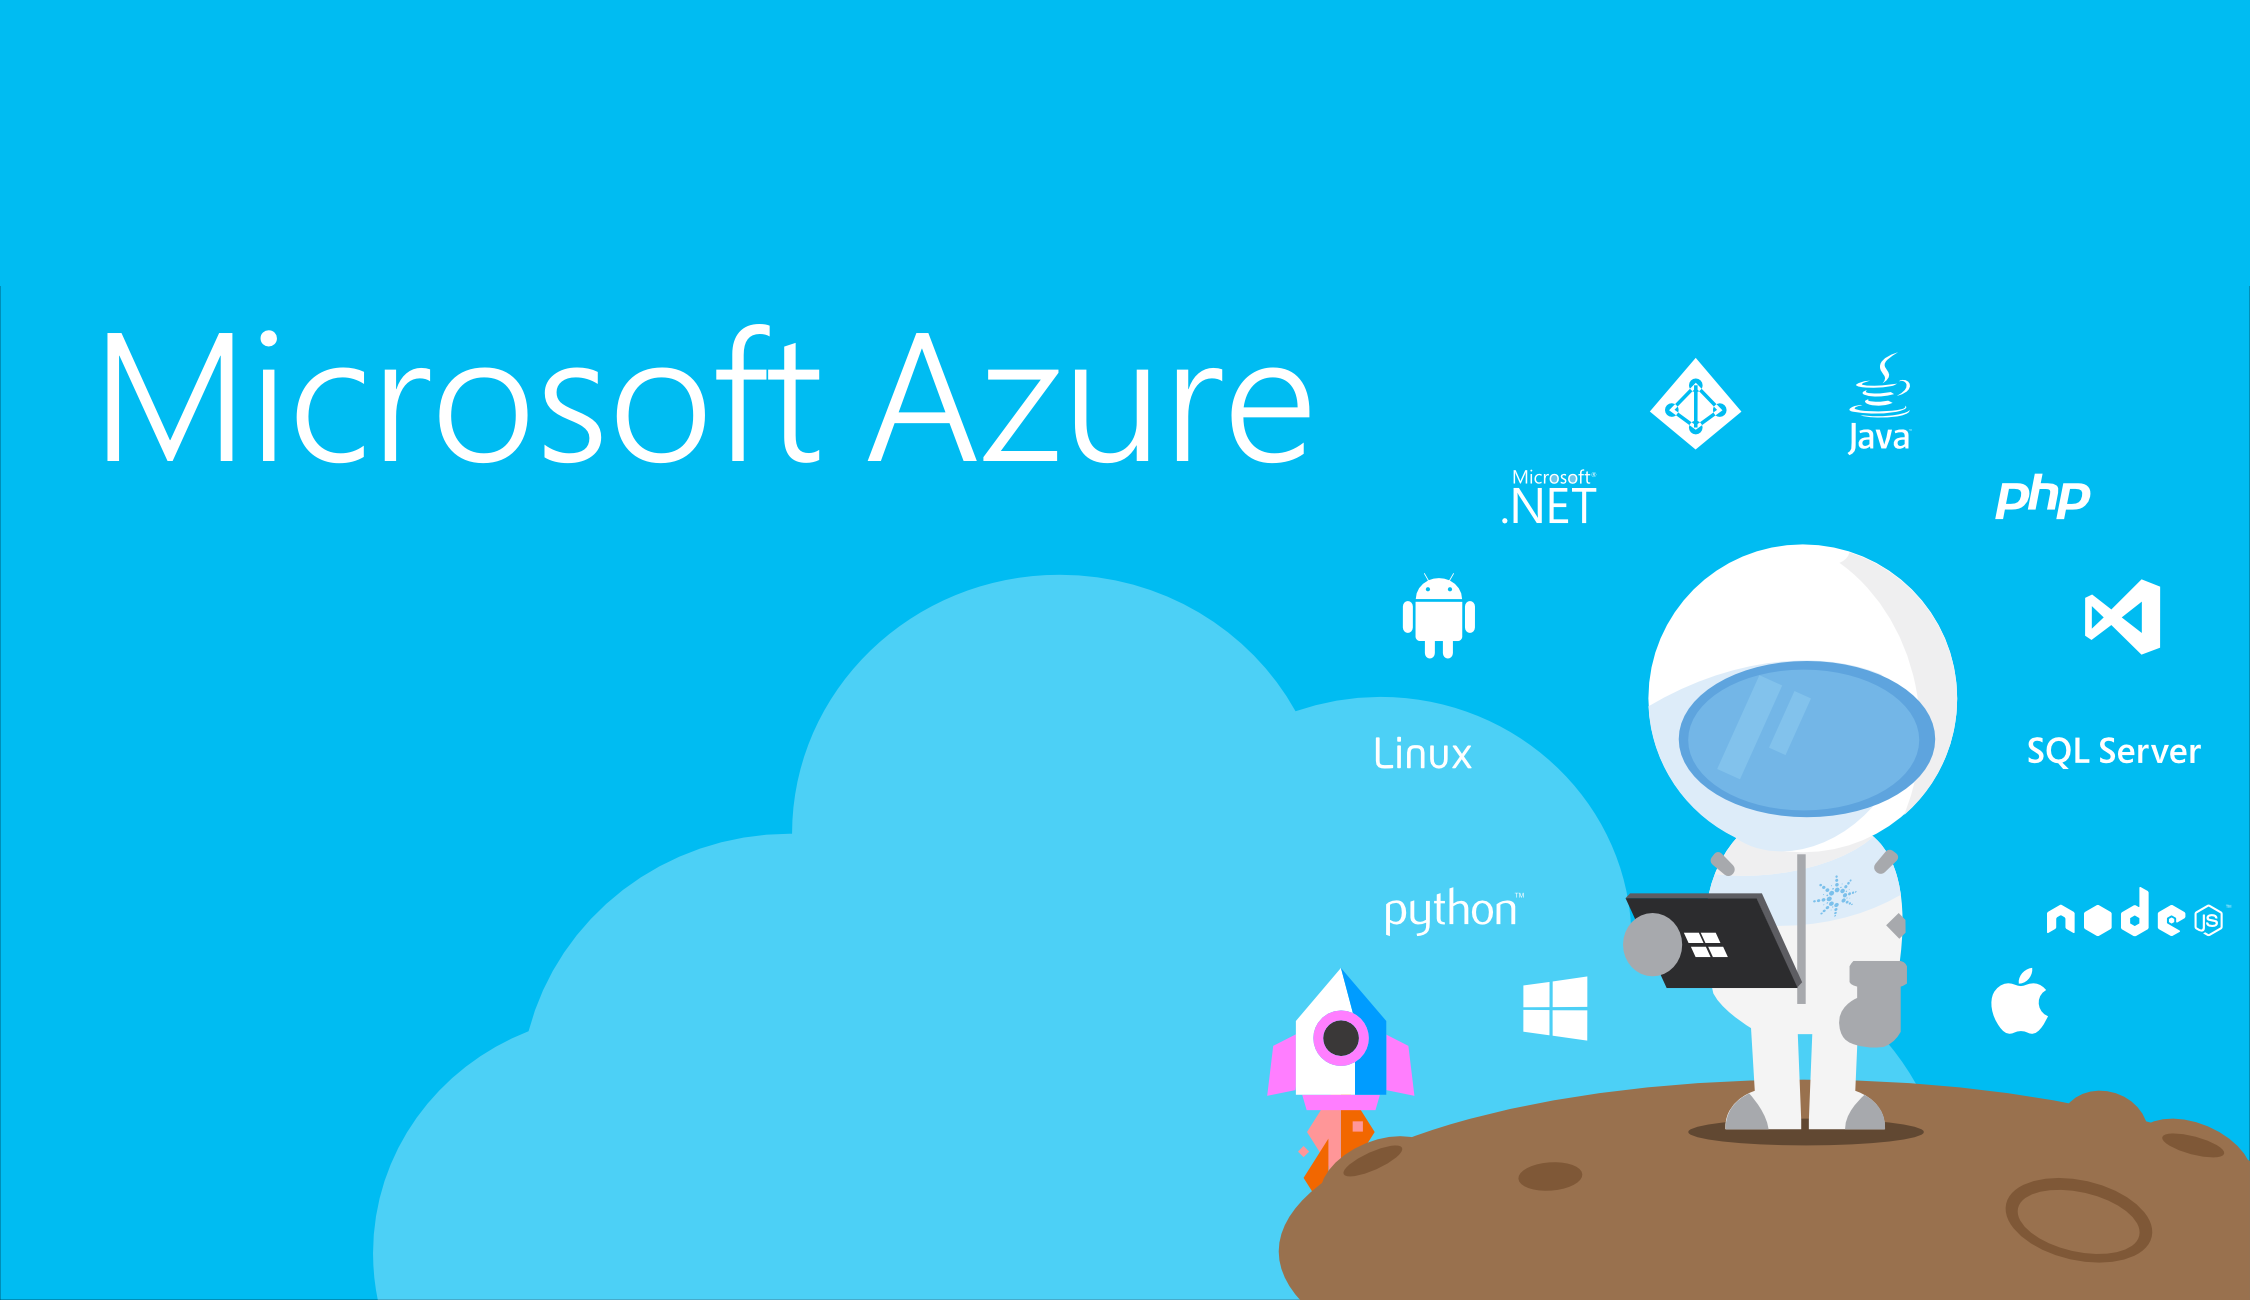 Azure your platform in the cloud